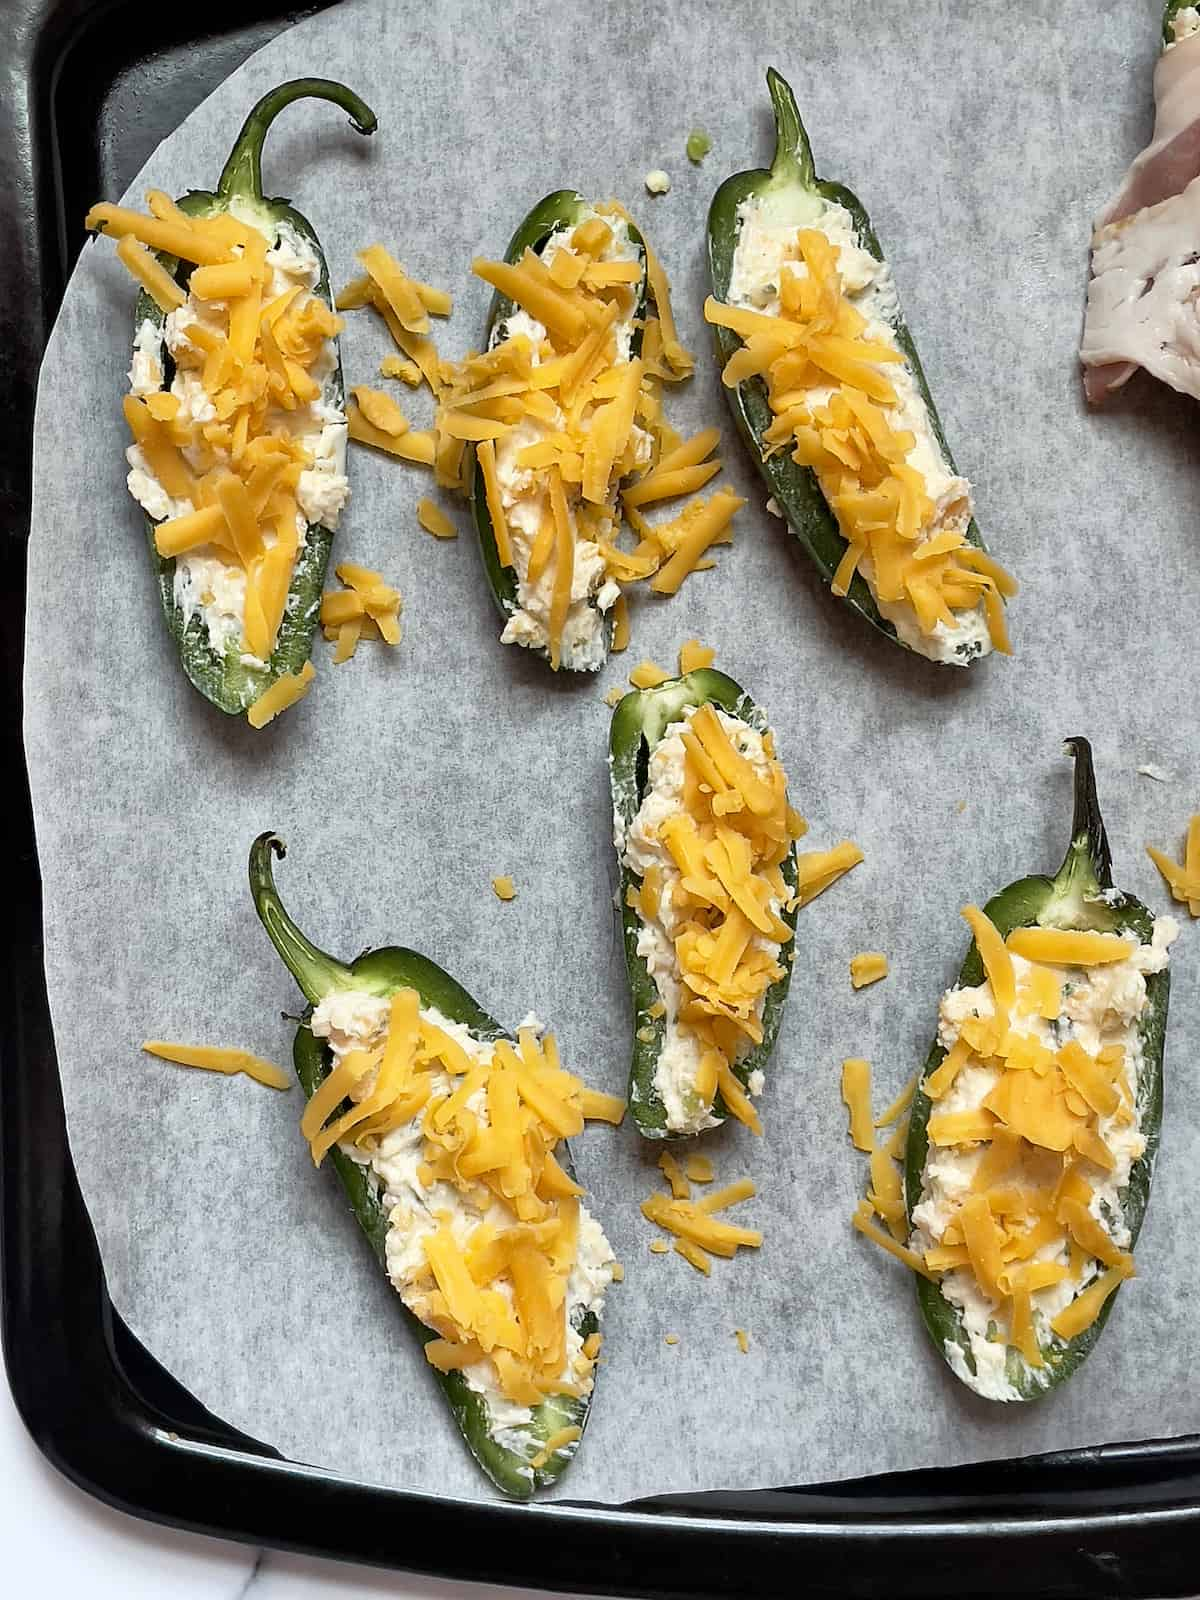 jalapeno poppers topped with shredded cheddar cheese on a baking pan